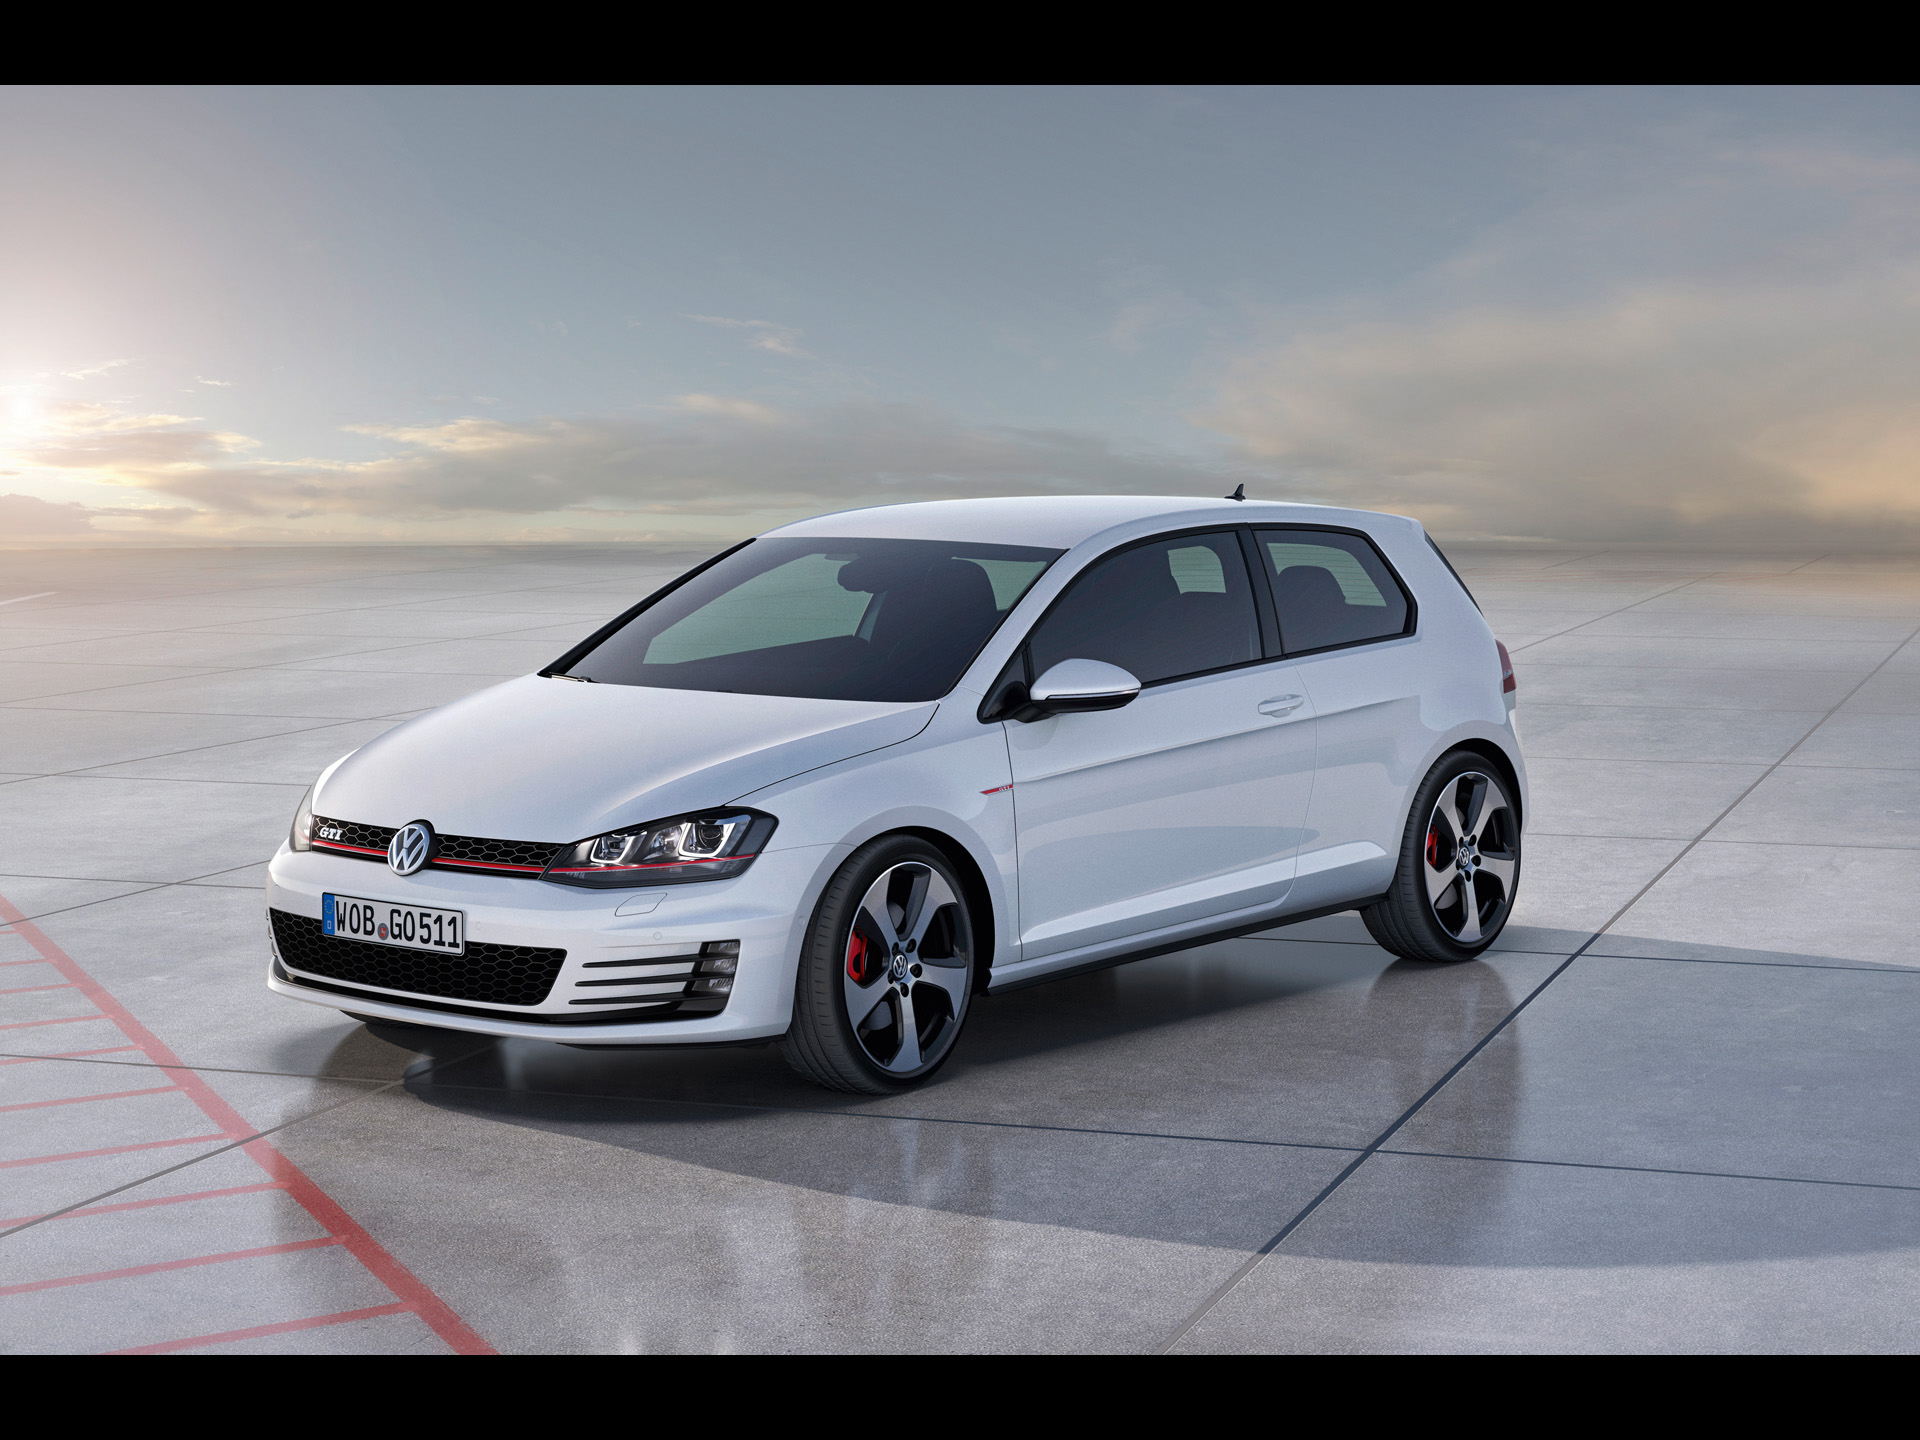 Vw Gti Wallpaper Iphone 2012 Volkswagen Golf 7 Gti Concept Static Side Angle